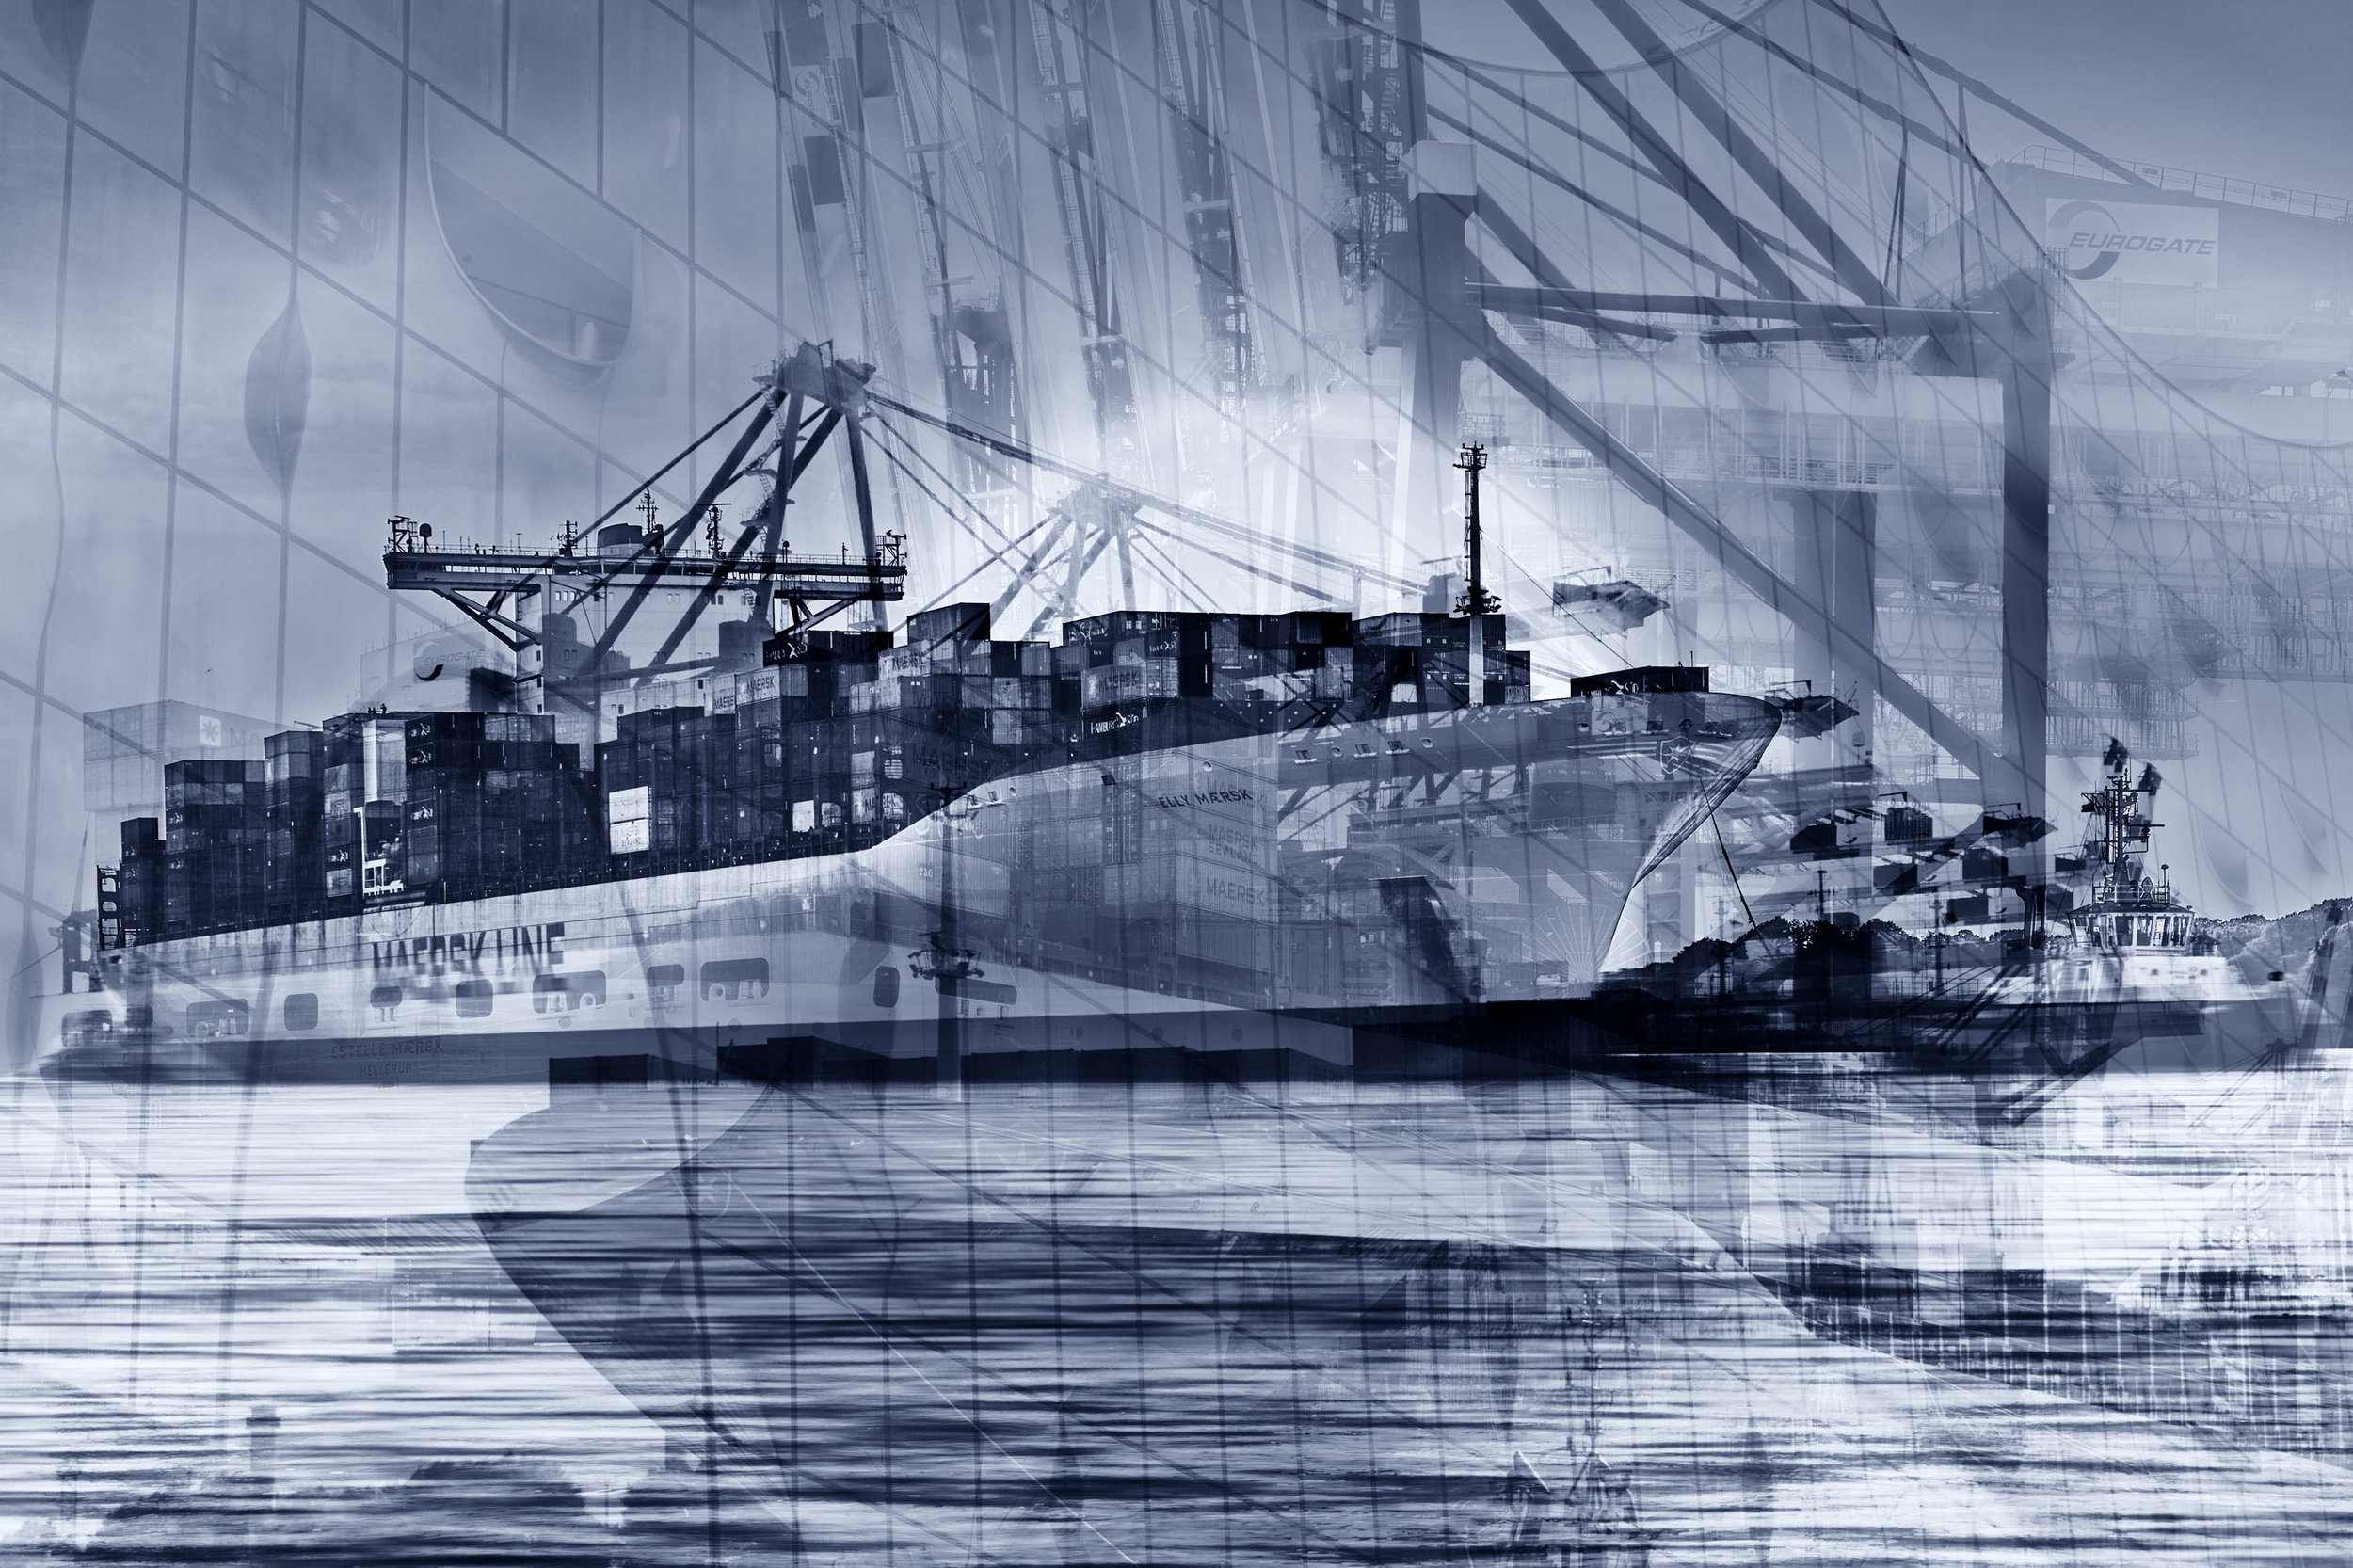 Maersk harbourlights 583bw.jpg